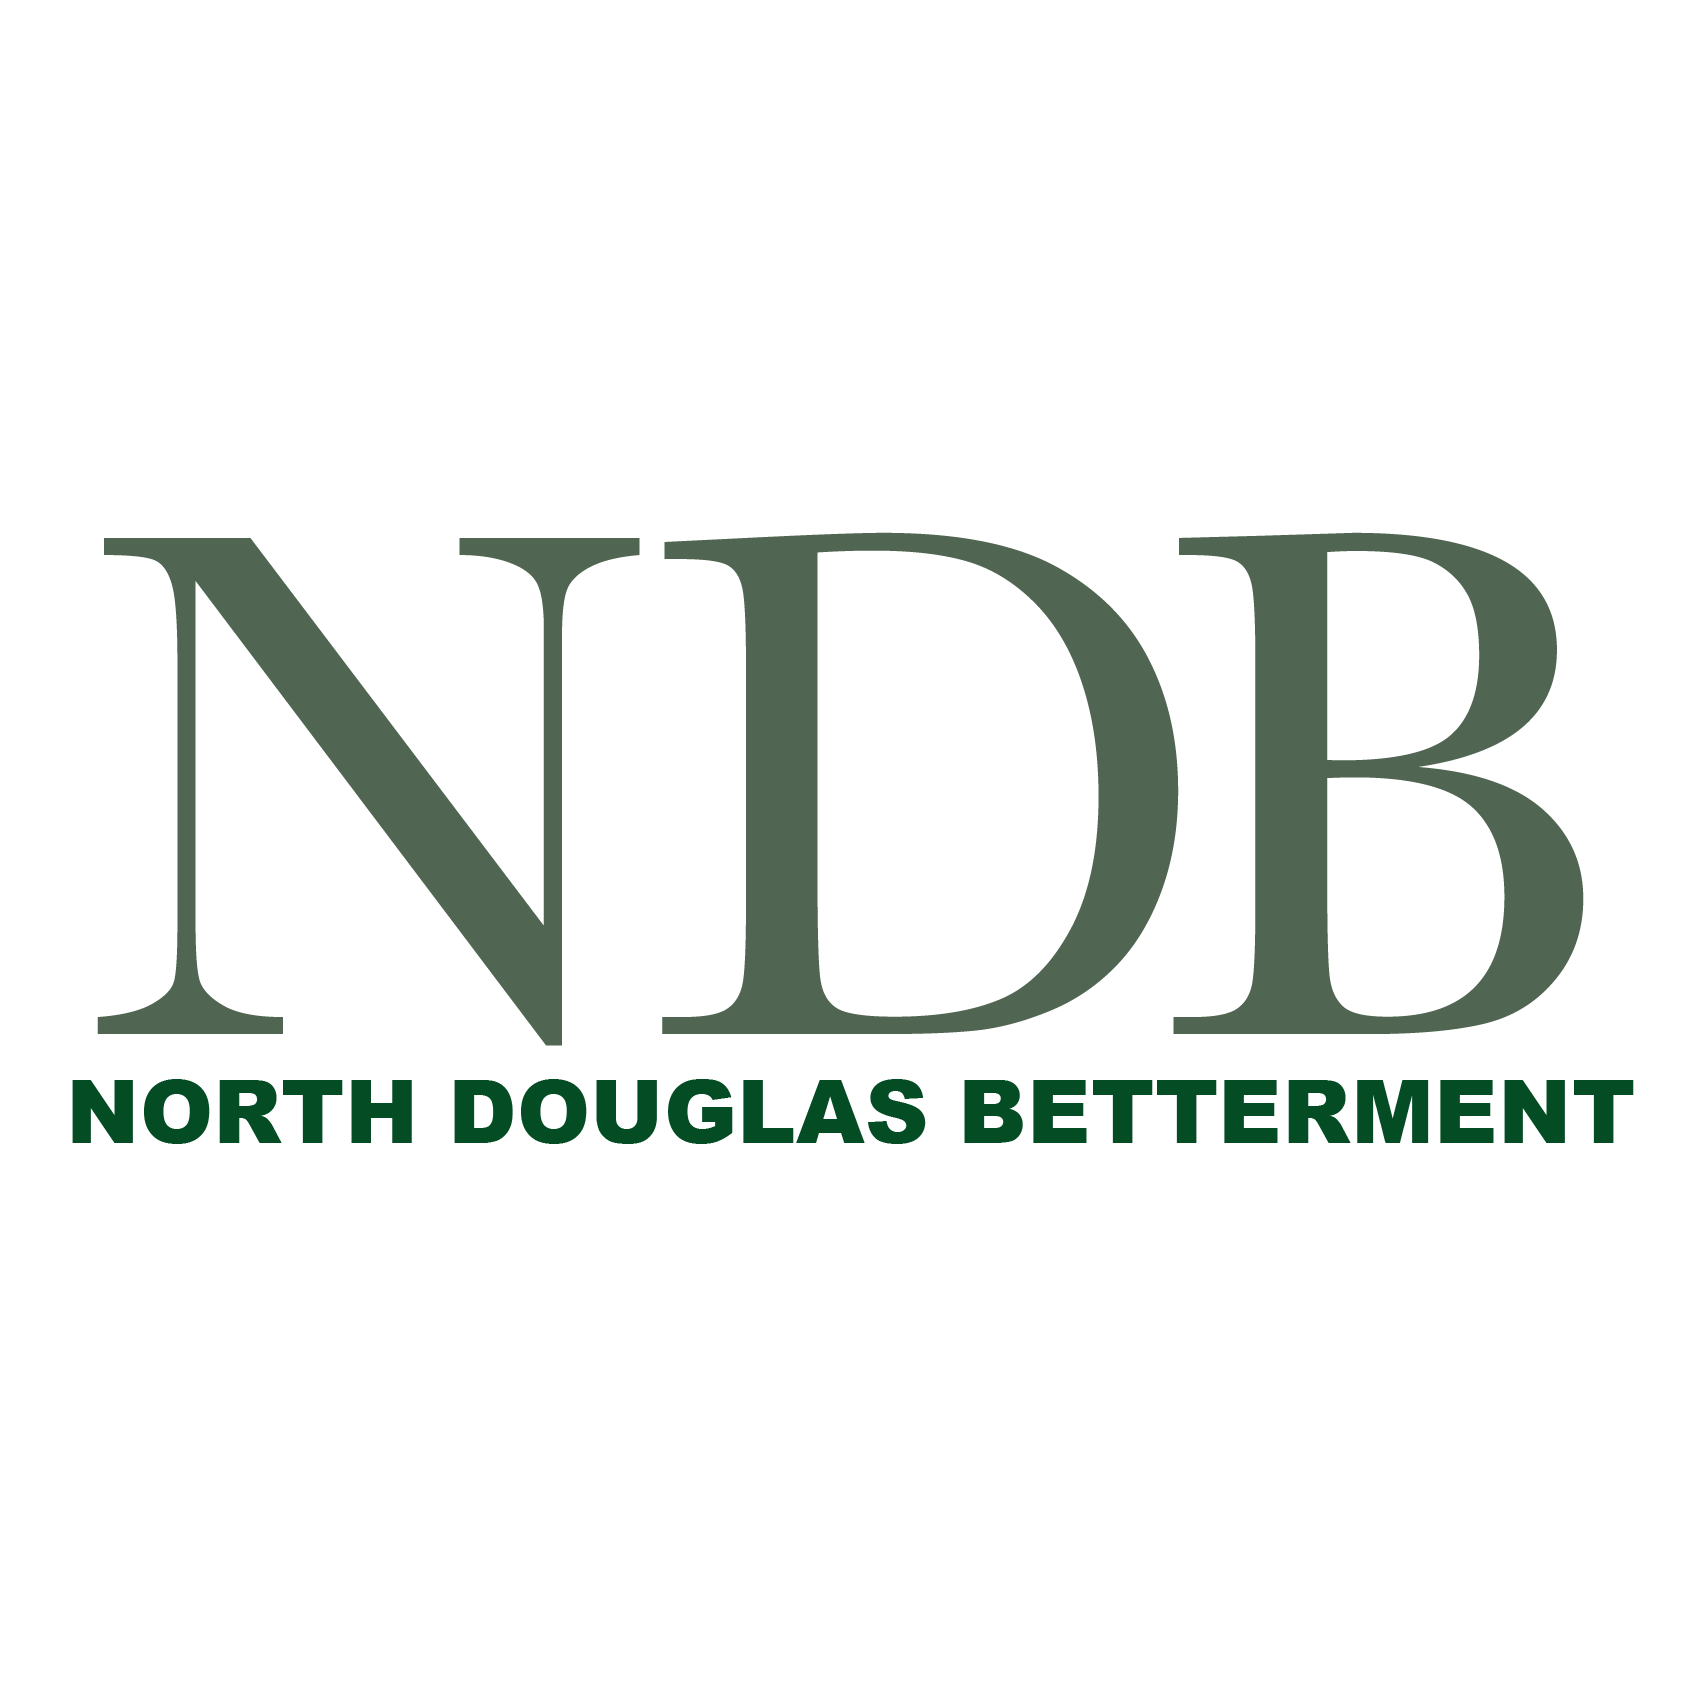 North Douglas Betterment